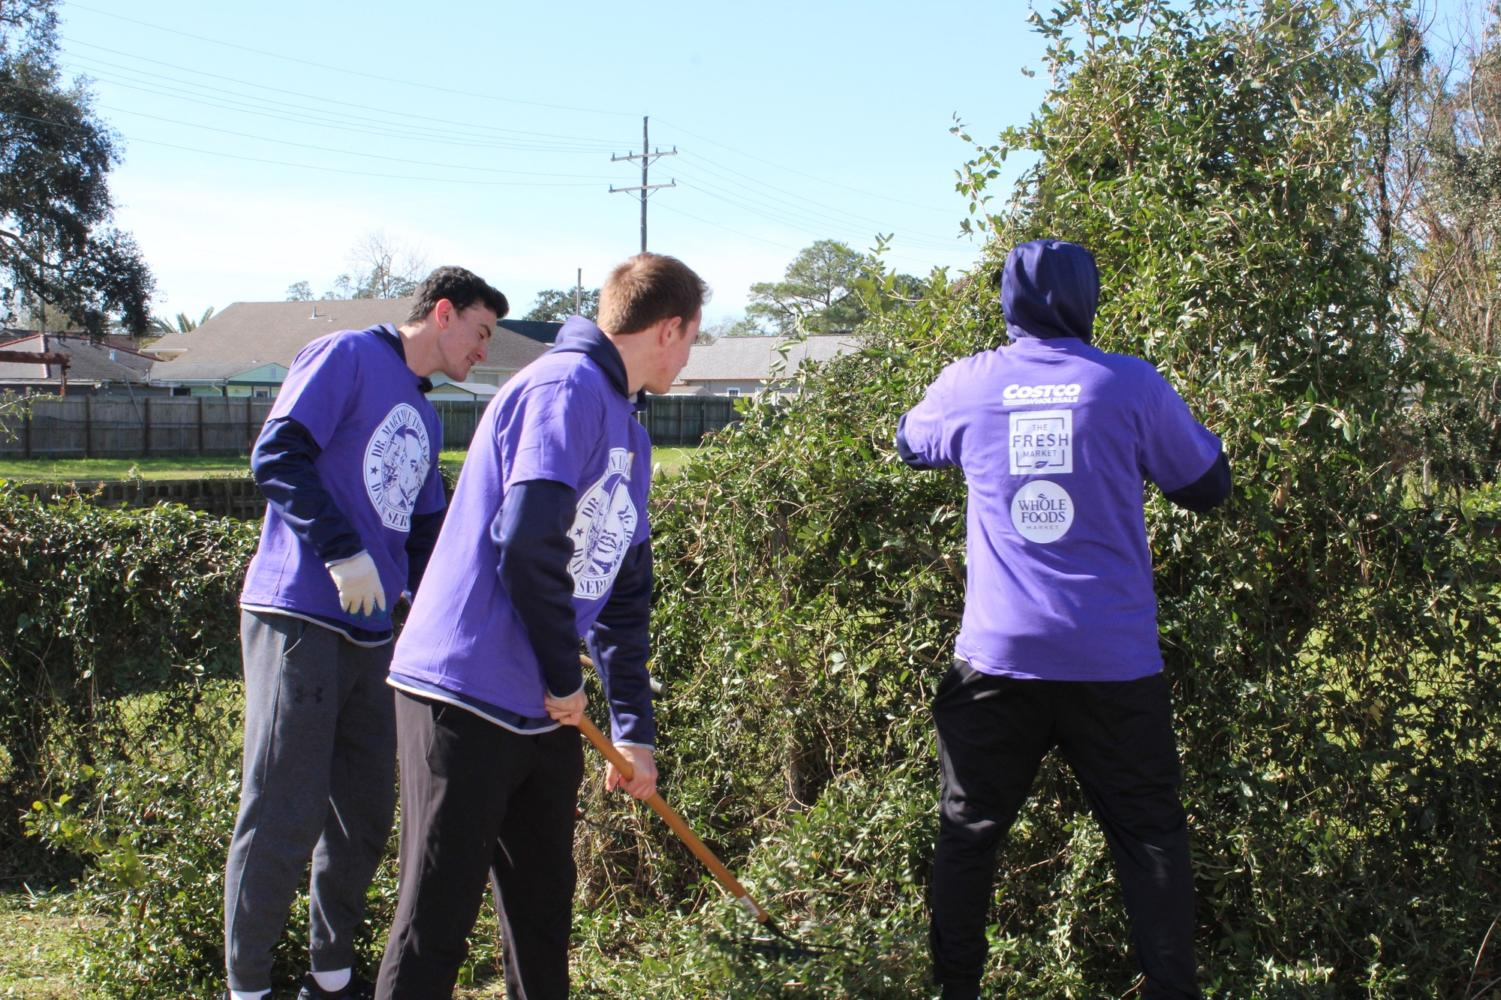 A group of University of New Orleans baseball players helps out thr local community by cutting pieces off an overgrown bush. HANNAH RENTON / The Maroon.